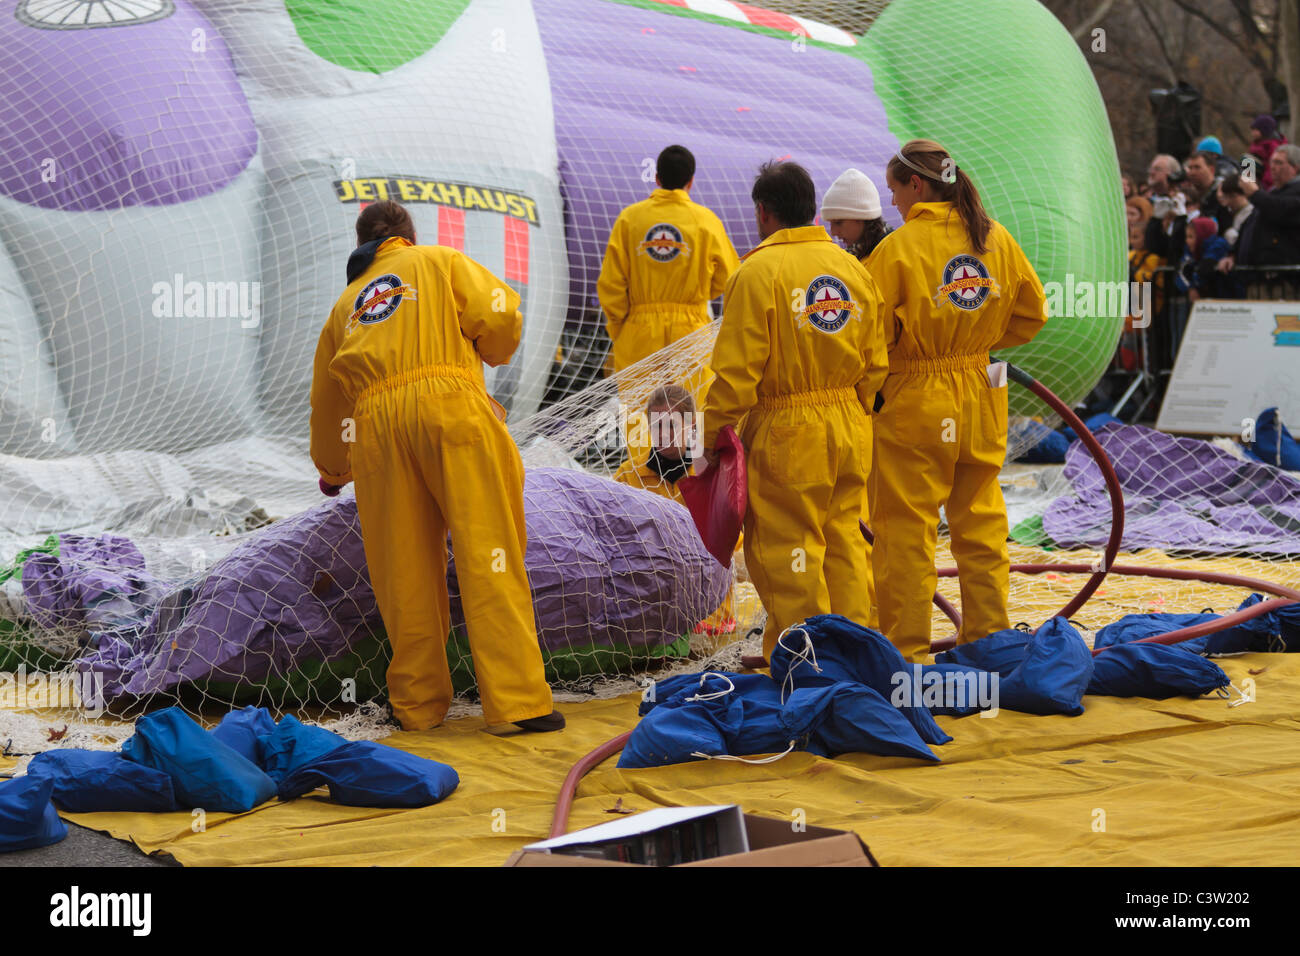 Macy's employees inflating the Buzz Lightyear balloon for the 2010 Macy's Thanksgiving Day parade in New - Stock Image